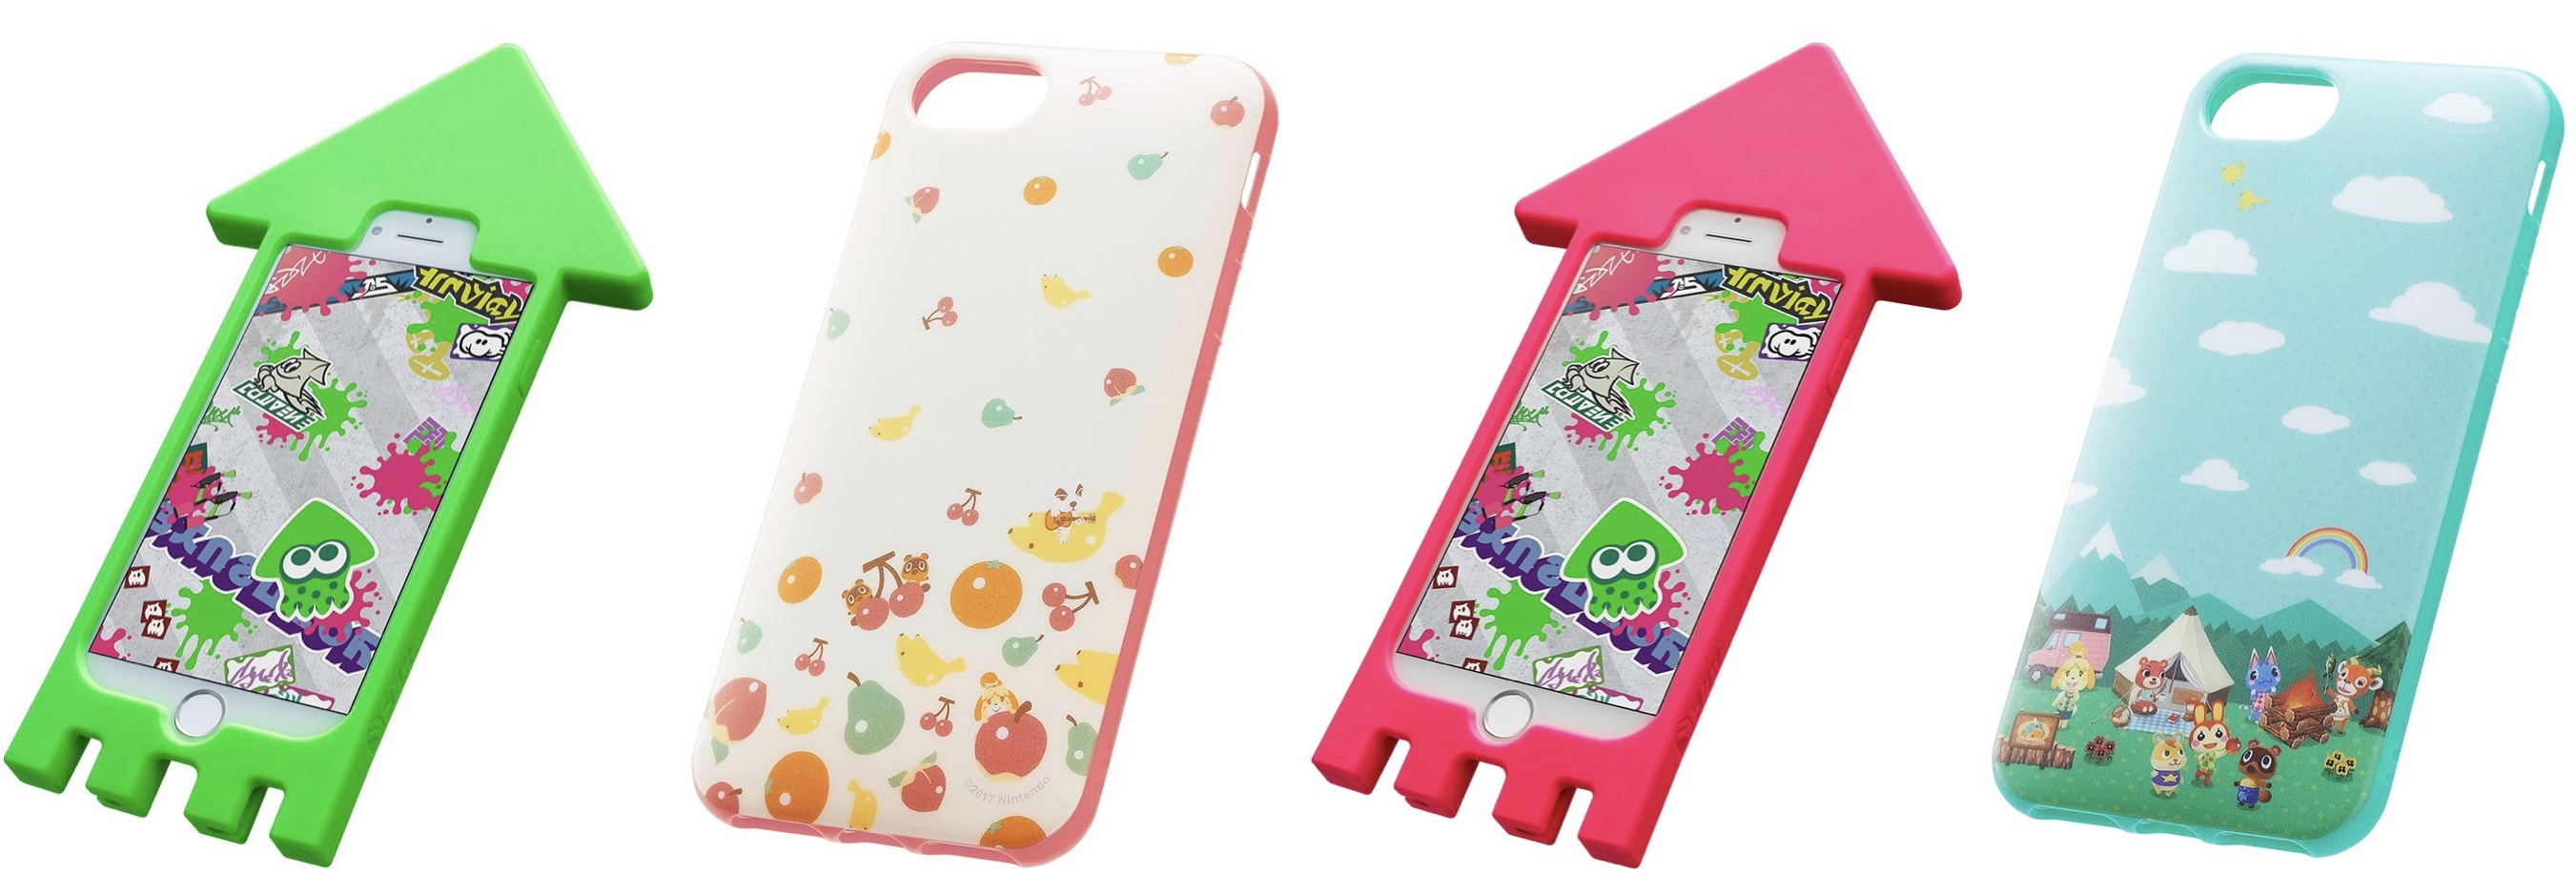 big sale 02a39 7bf89 Grab Nintendo's official iPhone cases while you can